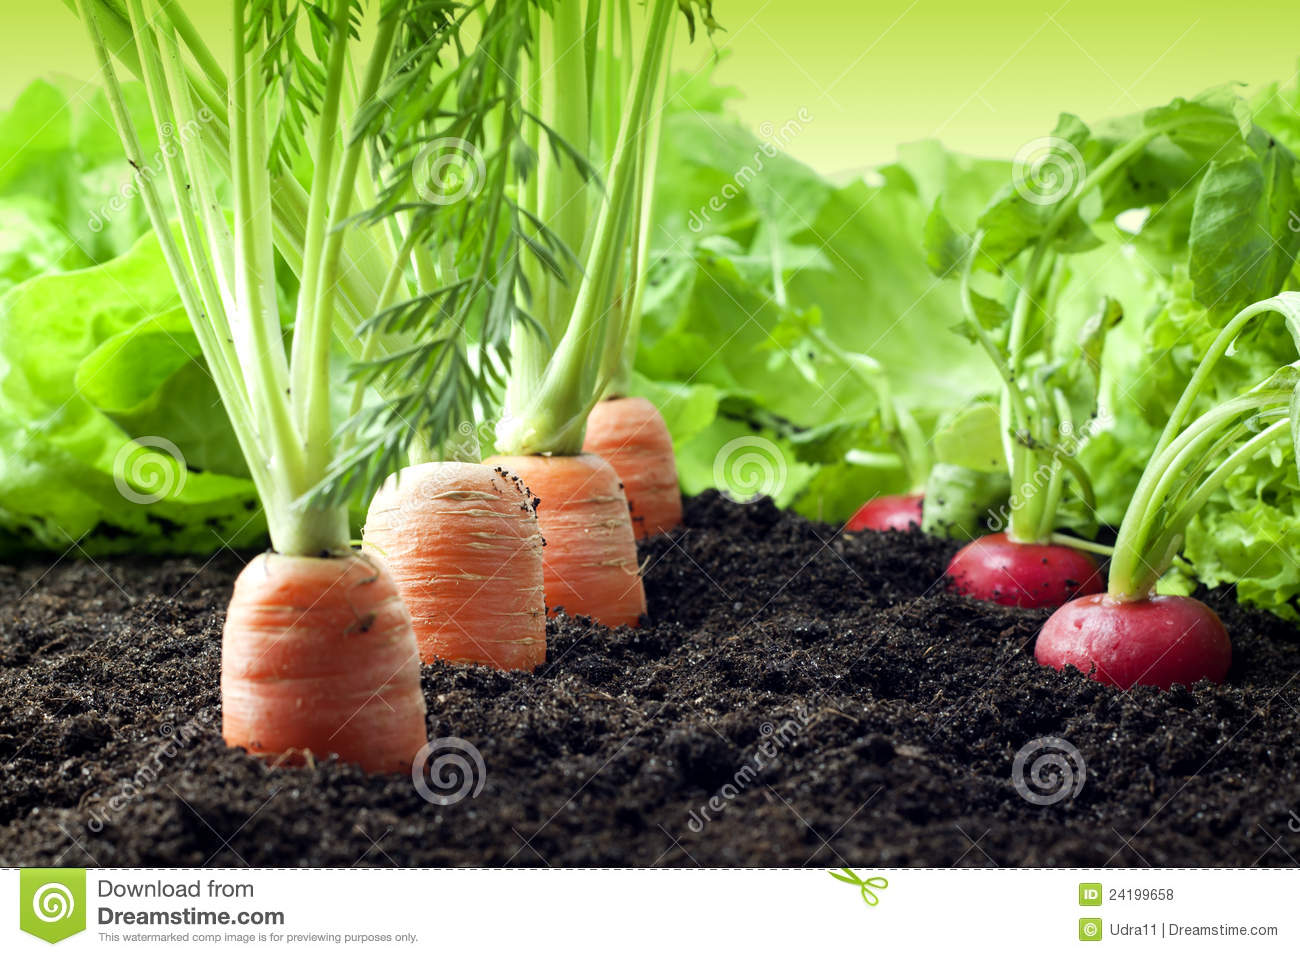 Carrots And Radish Growing In The Garden Royalty Free Stock Photos.